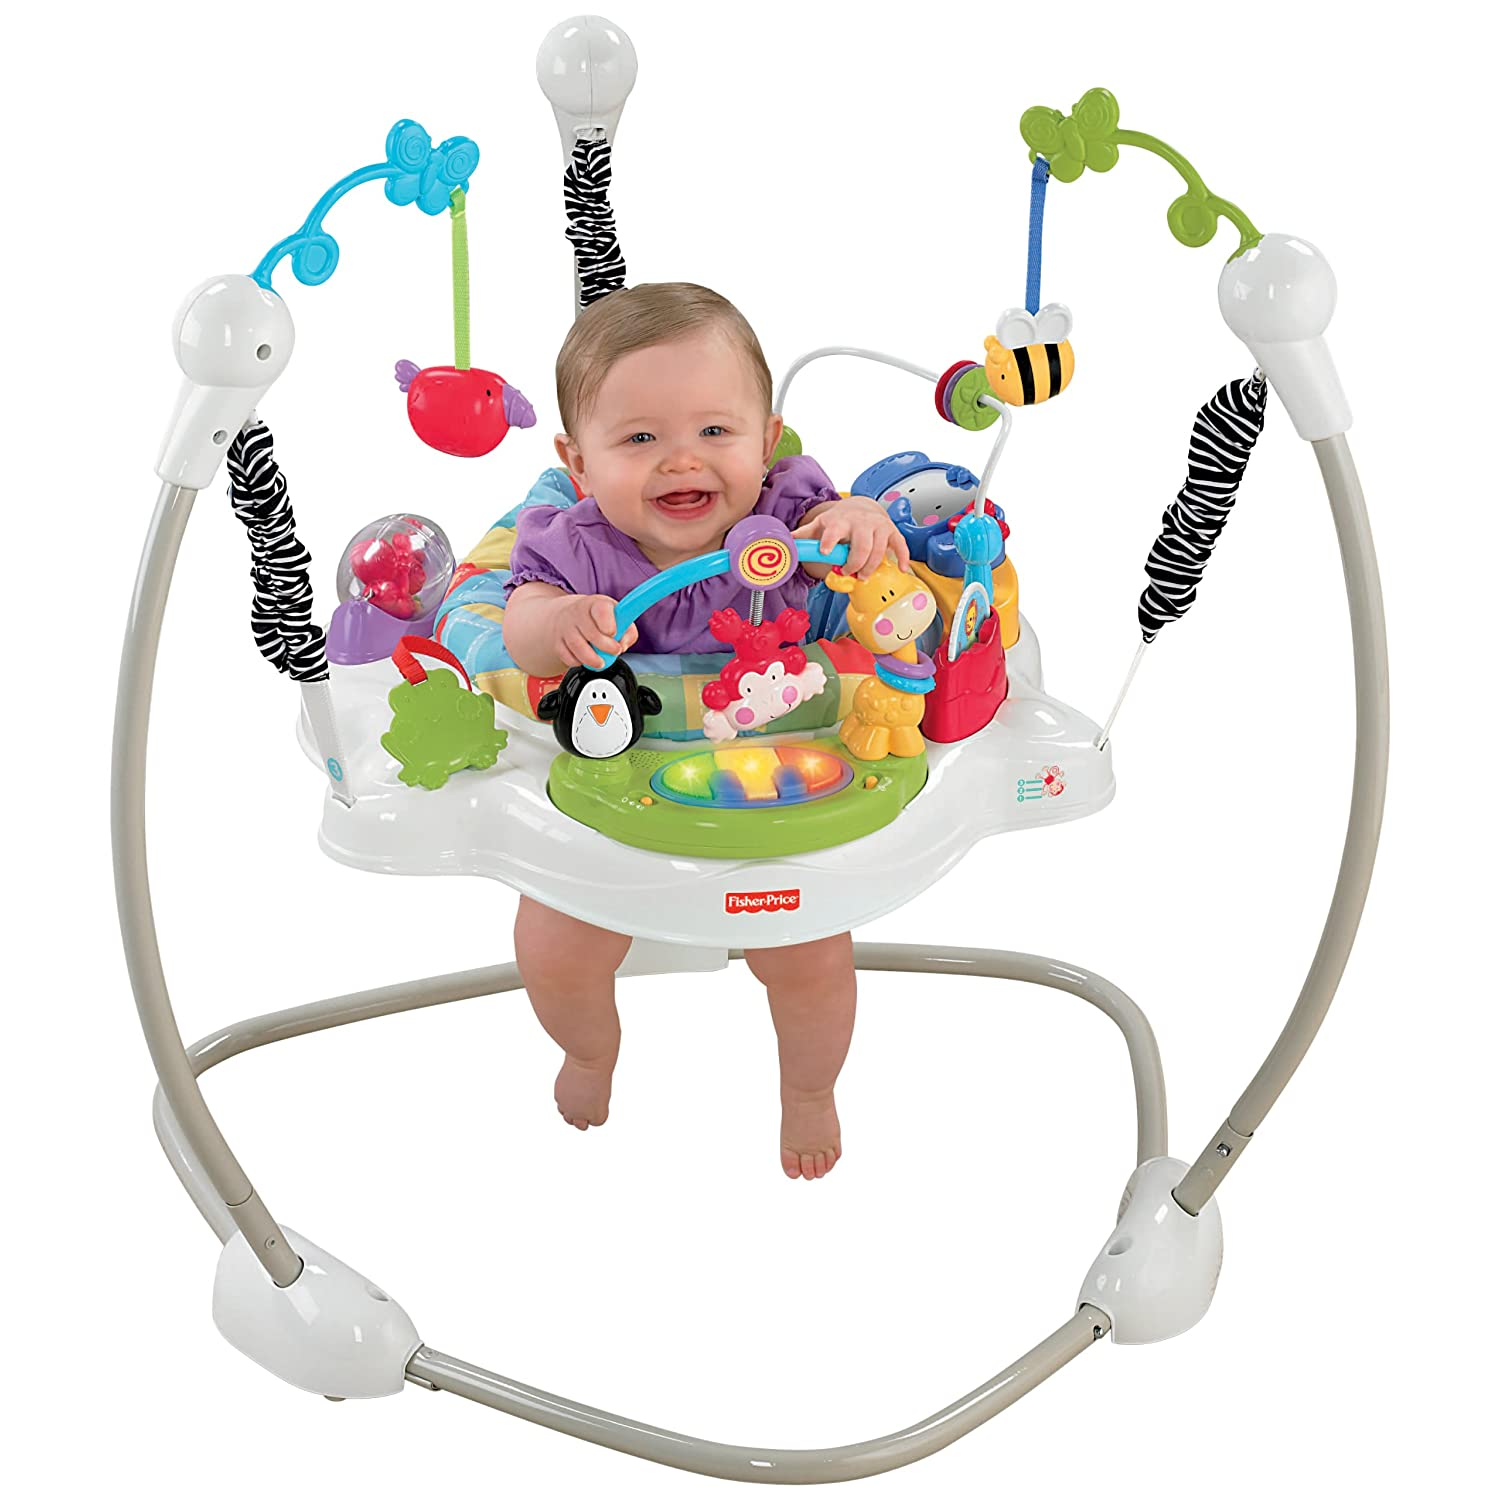 Fisher Price Discover and n Grow Jungle Piano Jumper Jumperoo Bouncer Gym NIB | eBay